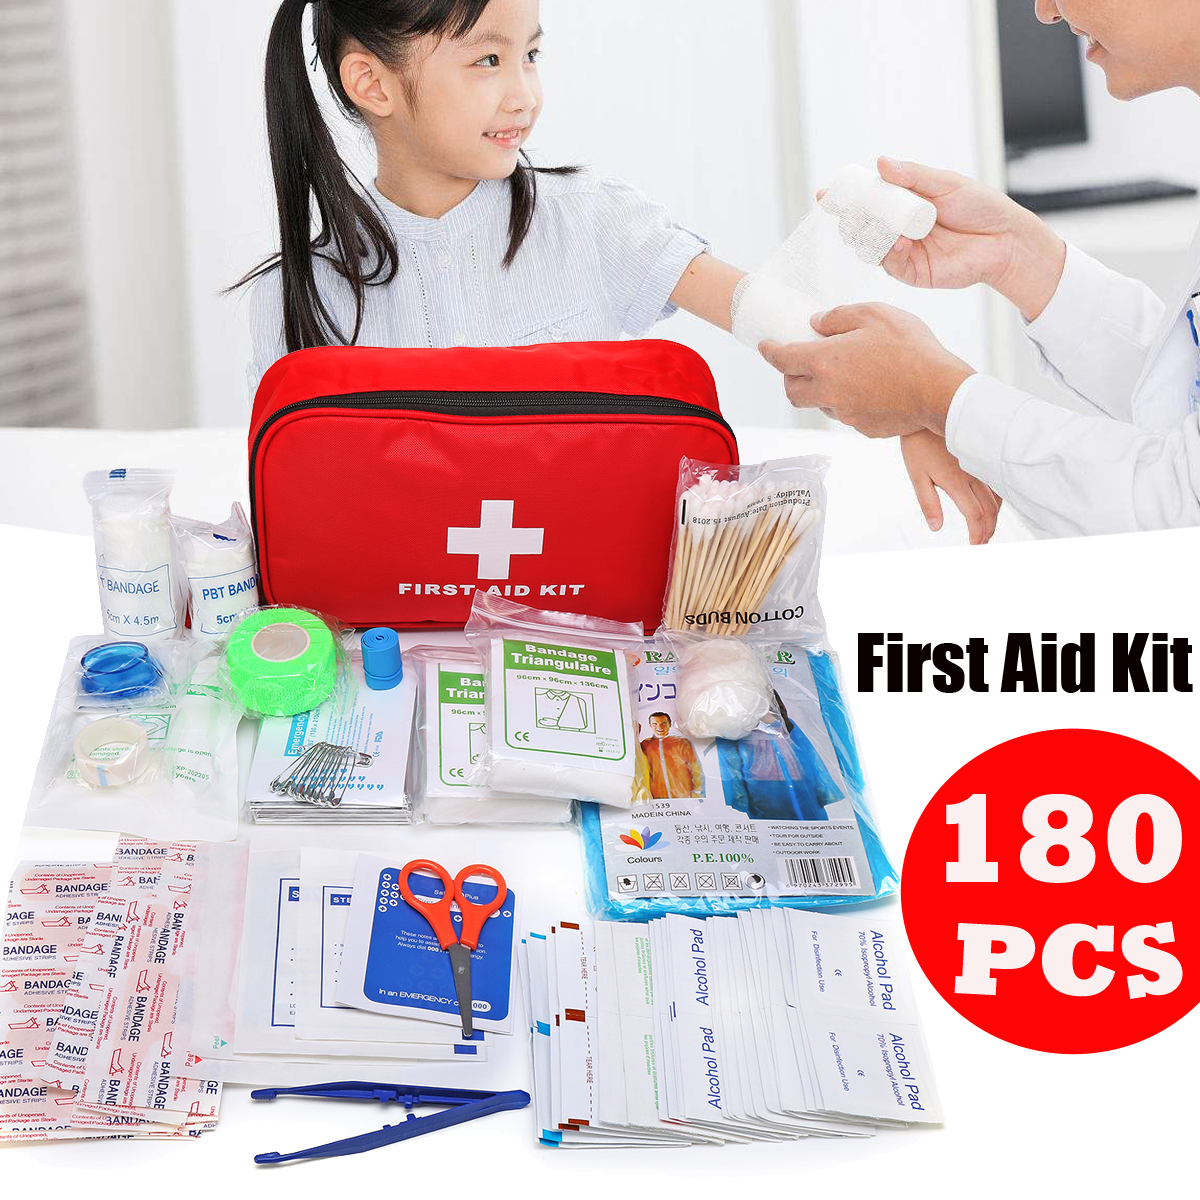 Details about 180 Pieces First Aid Kit - All-Purpose Premium Medical  Supplies & Emergency Bag